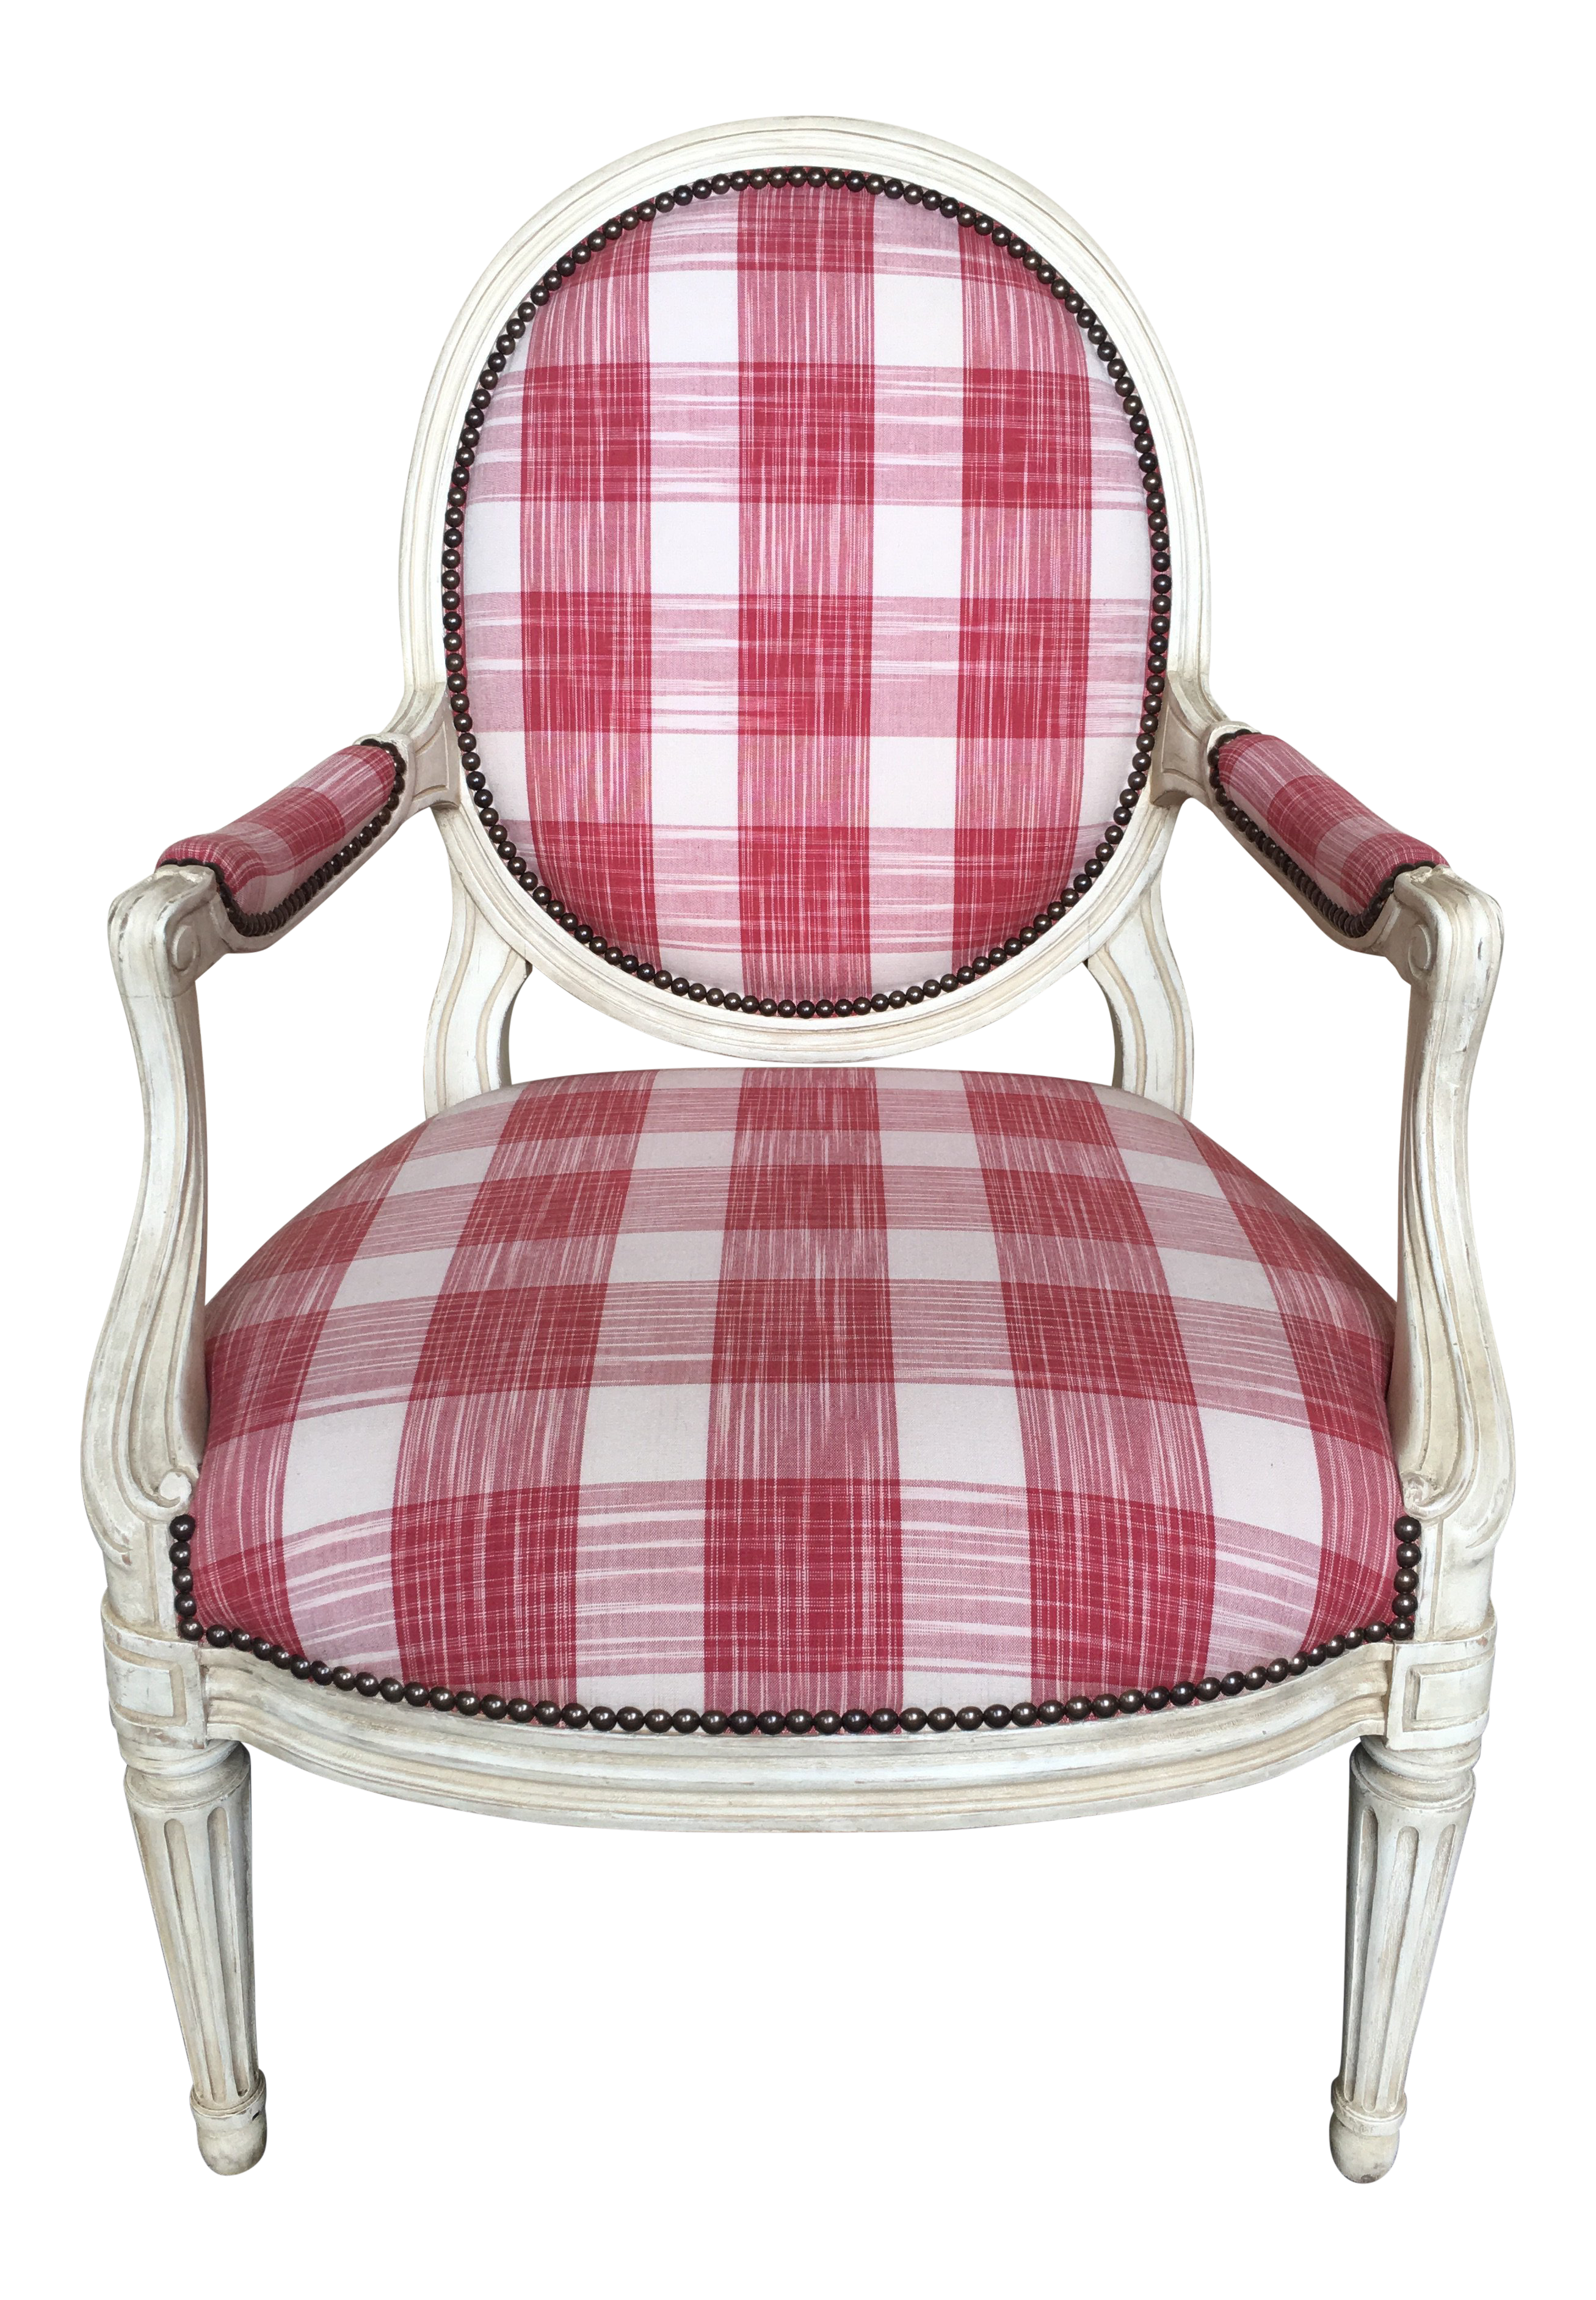 Minton Spidell Red U0026 White Plaid Upholstered Bergère Chair